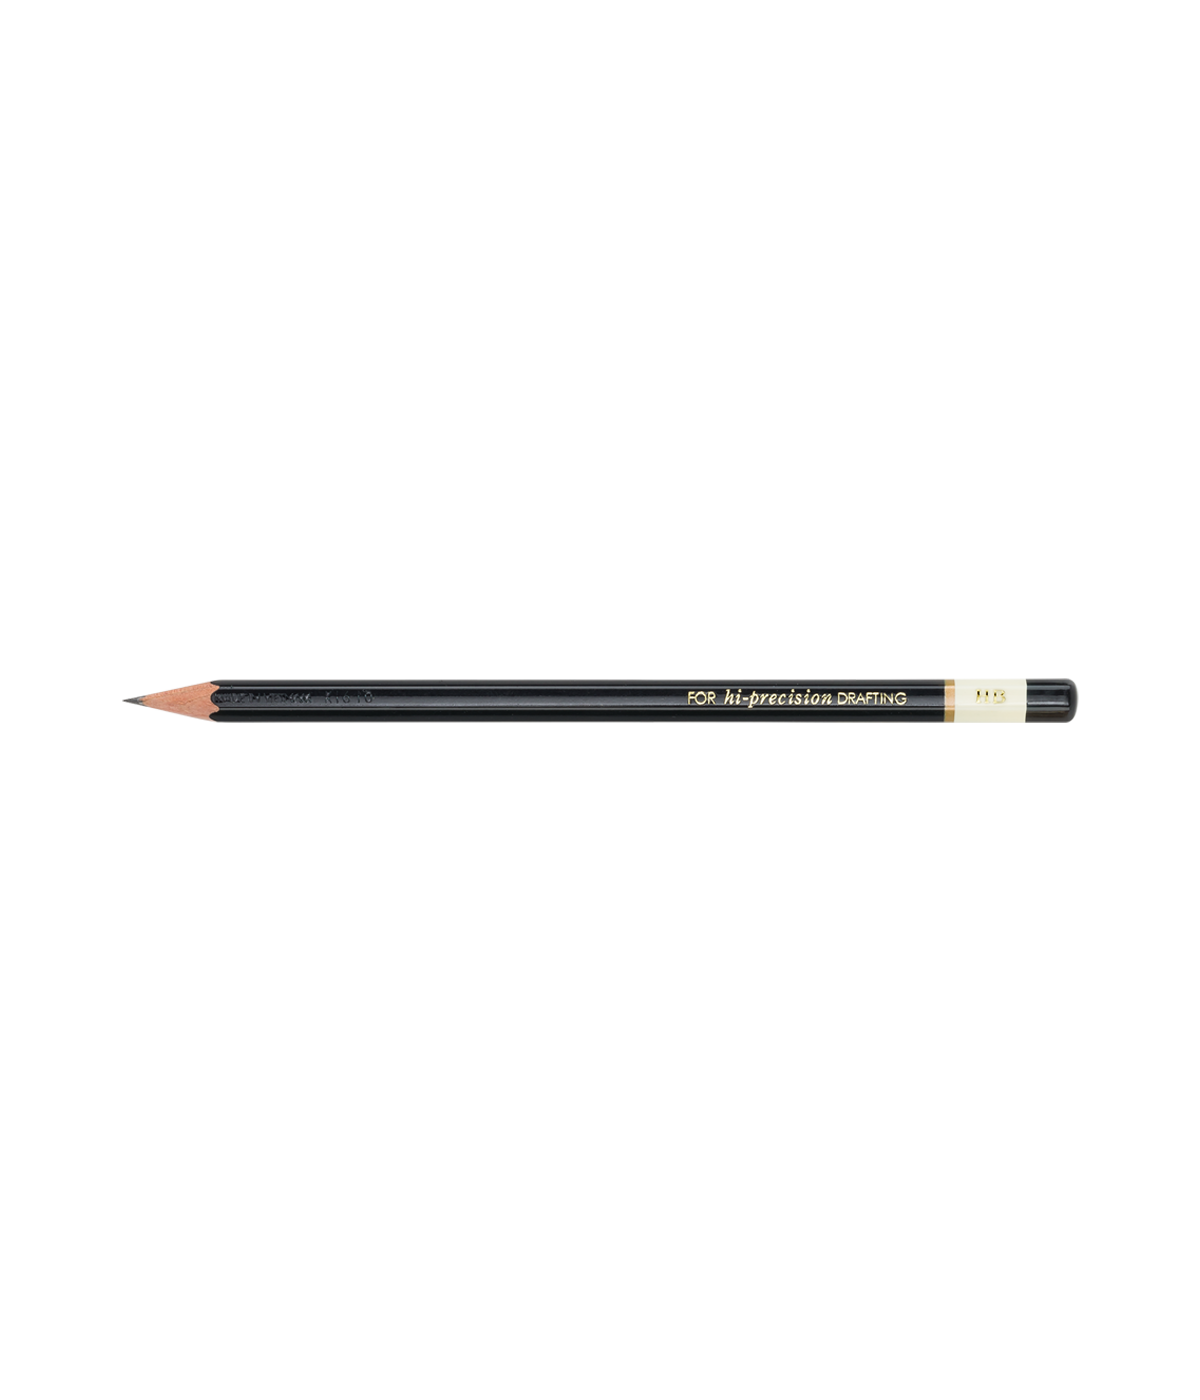 svg Mono appointed. Usa drawing pencil